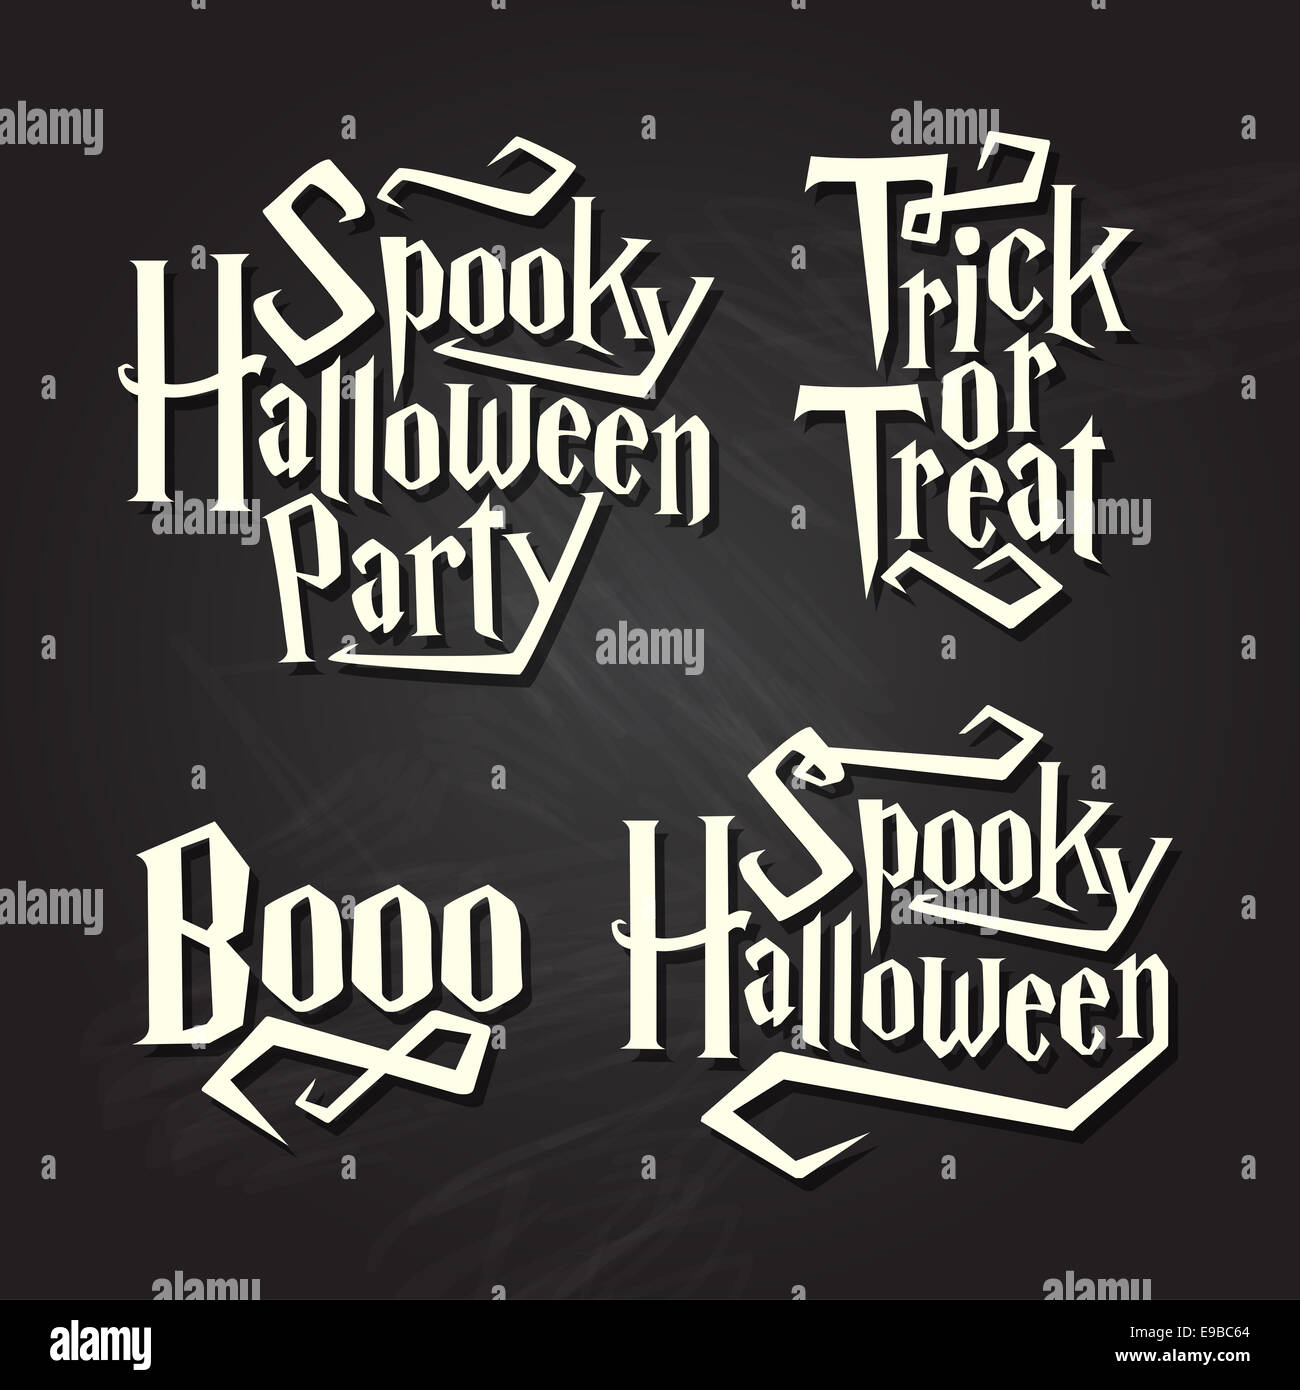 Spooky halloween quotes on black chalkboard background Stock Photo ...